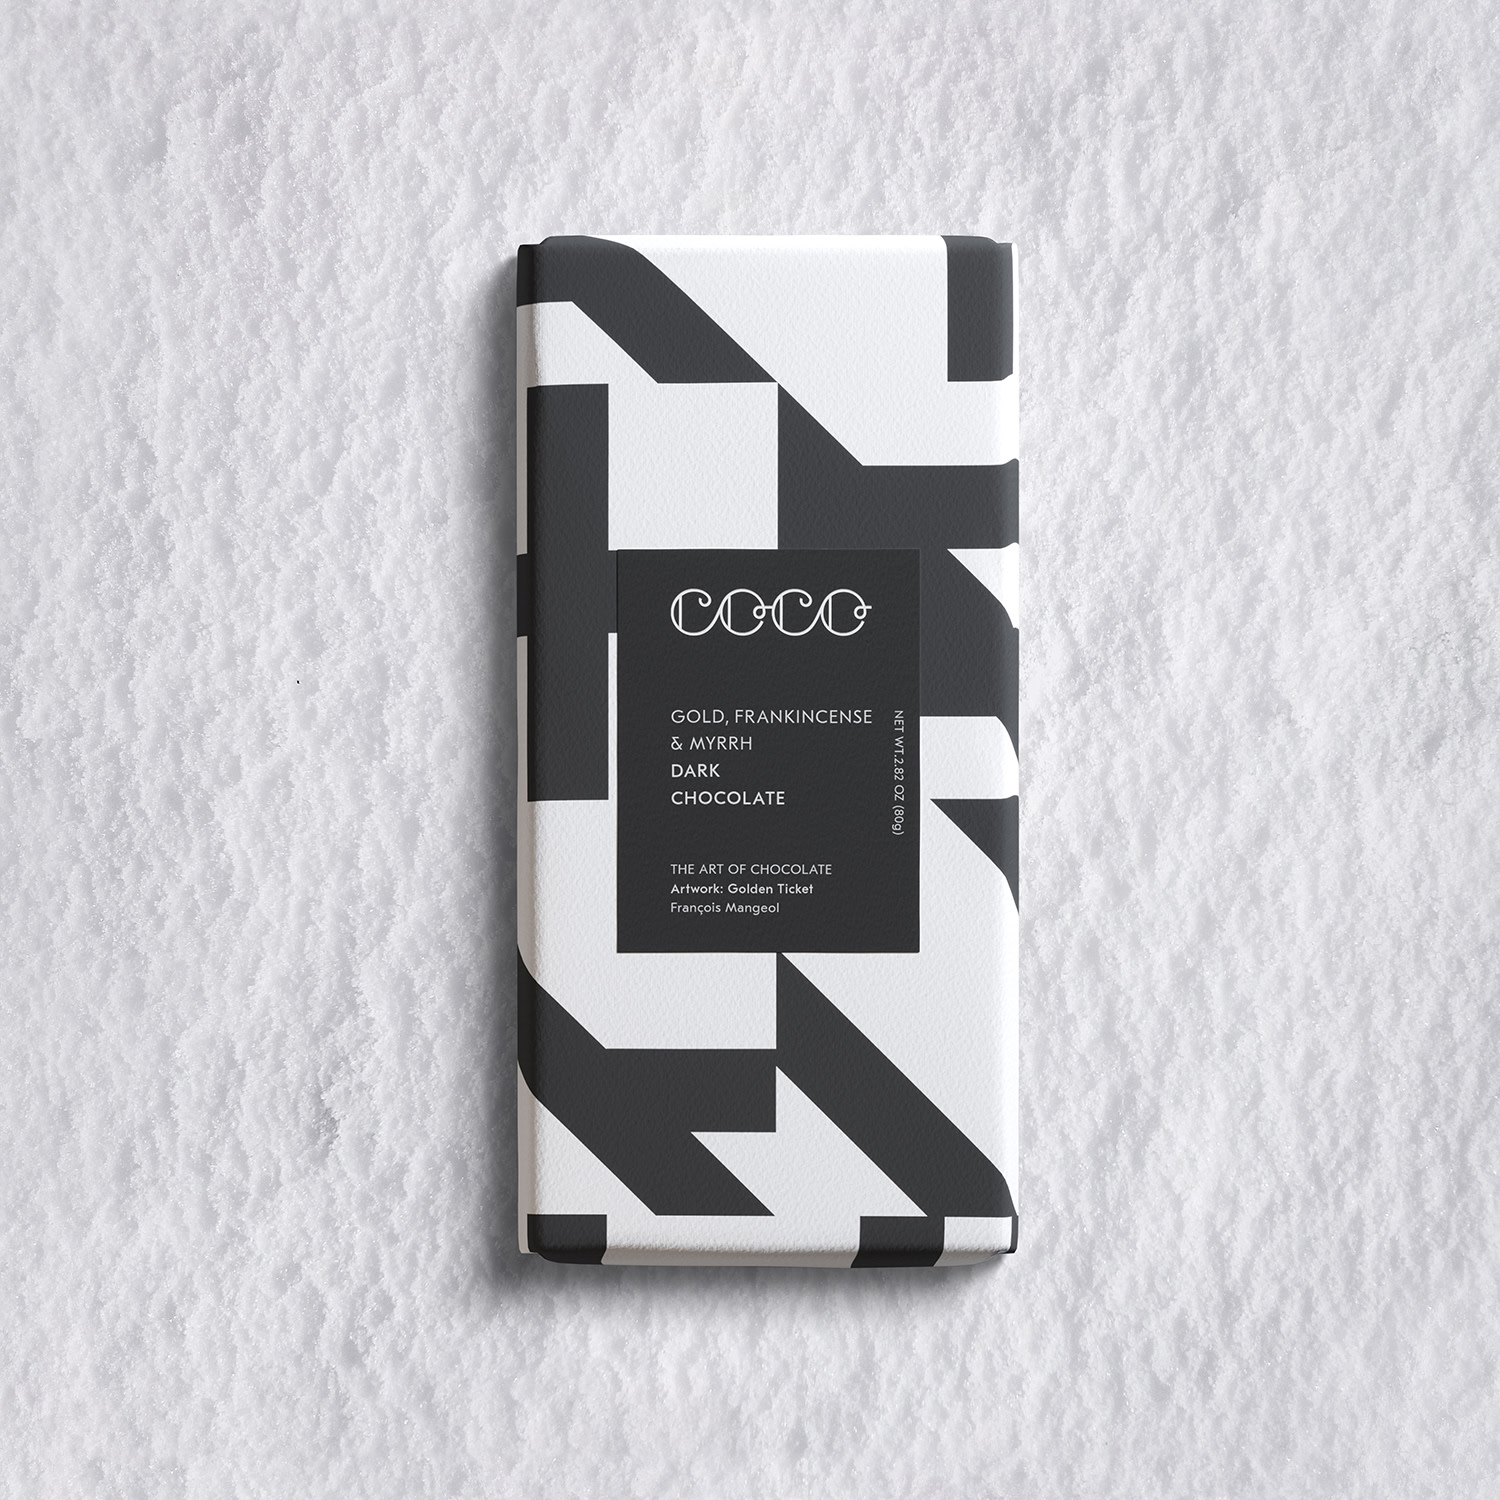 COCO - The Art of Chocolate